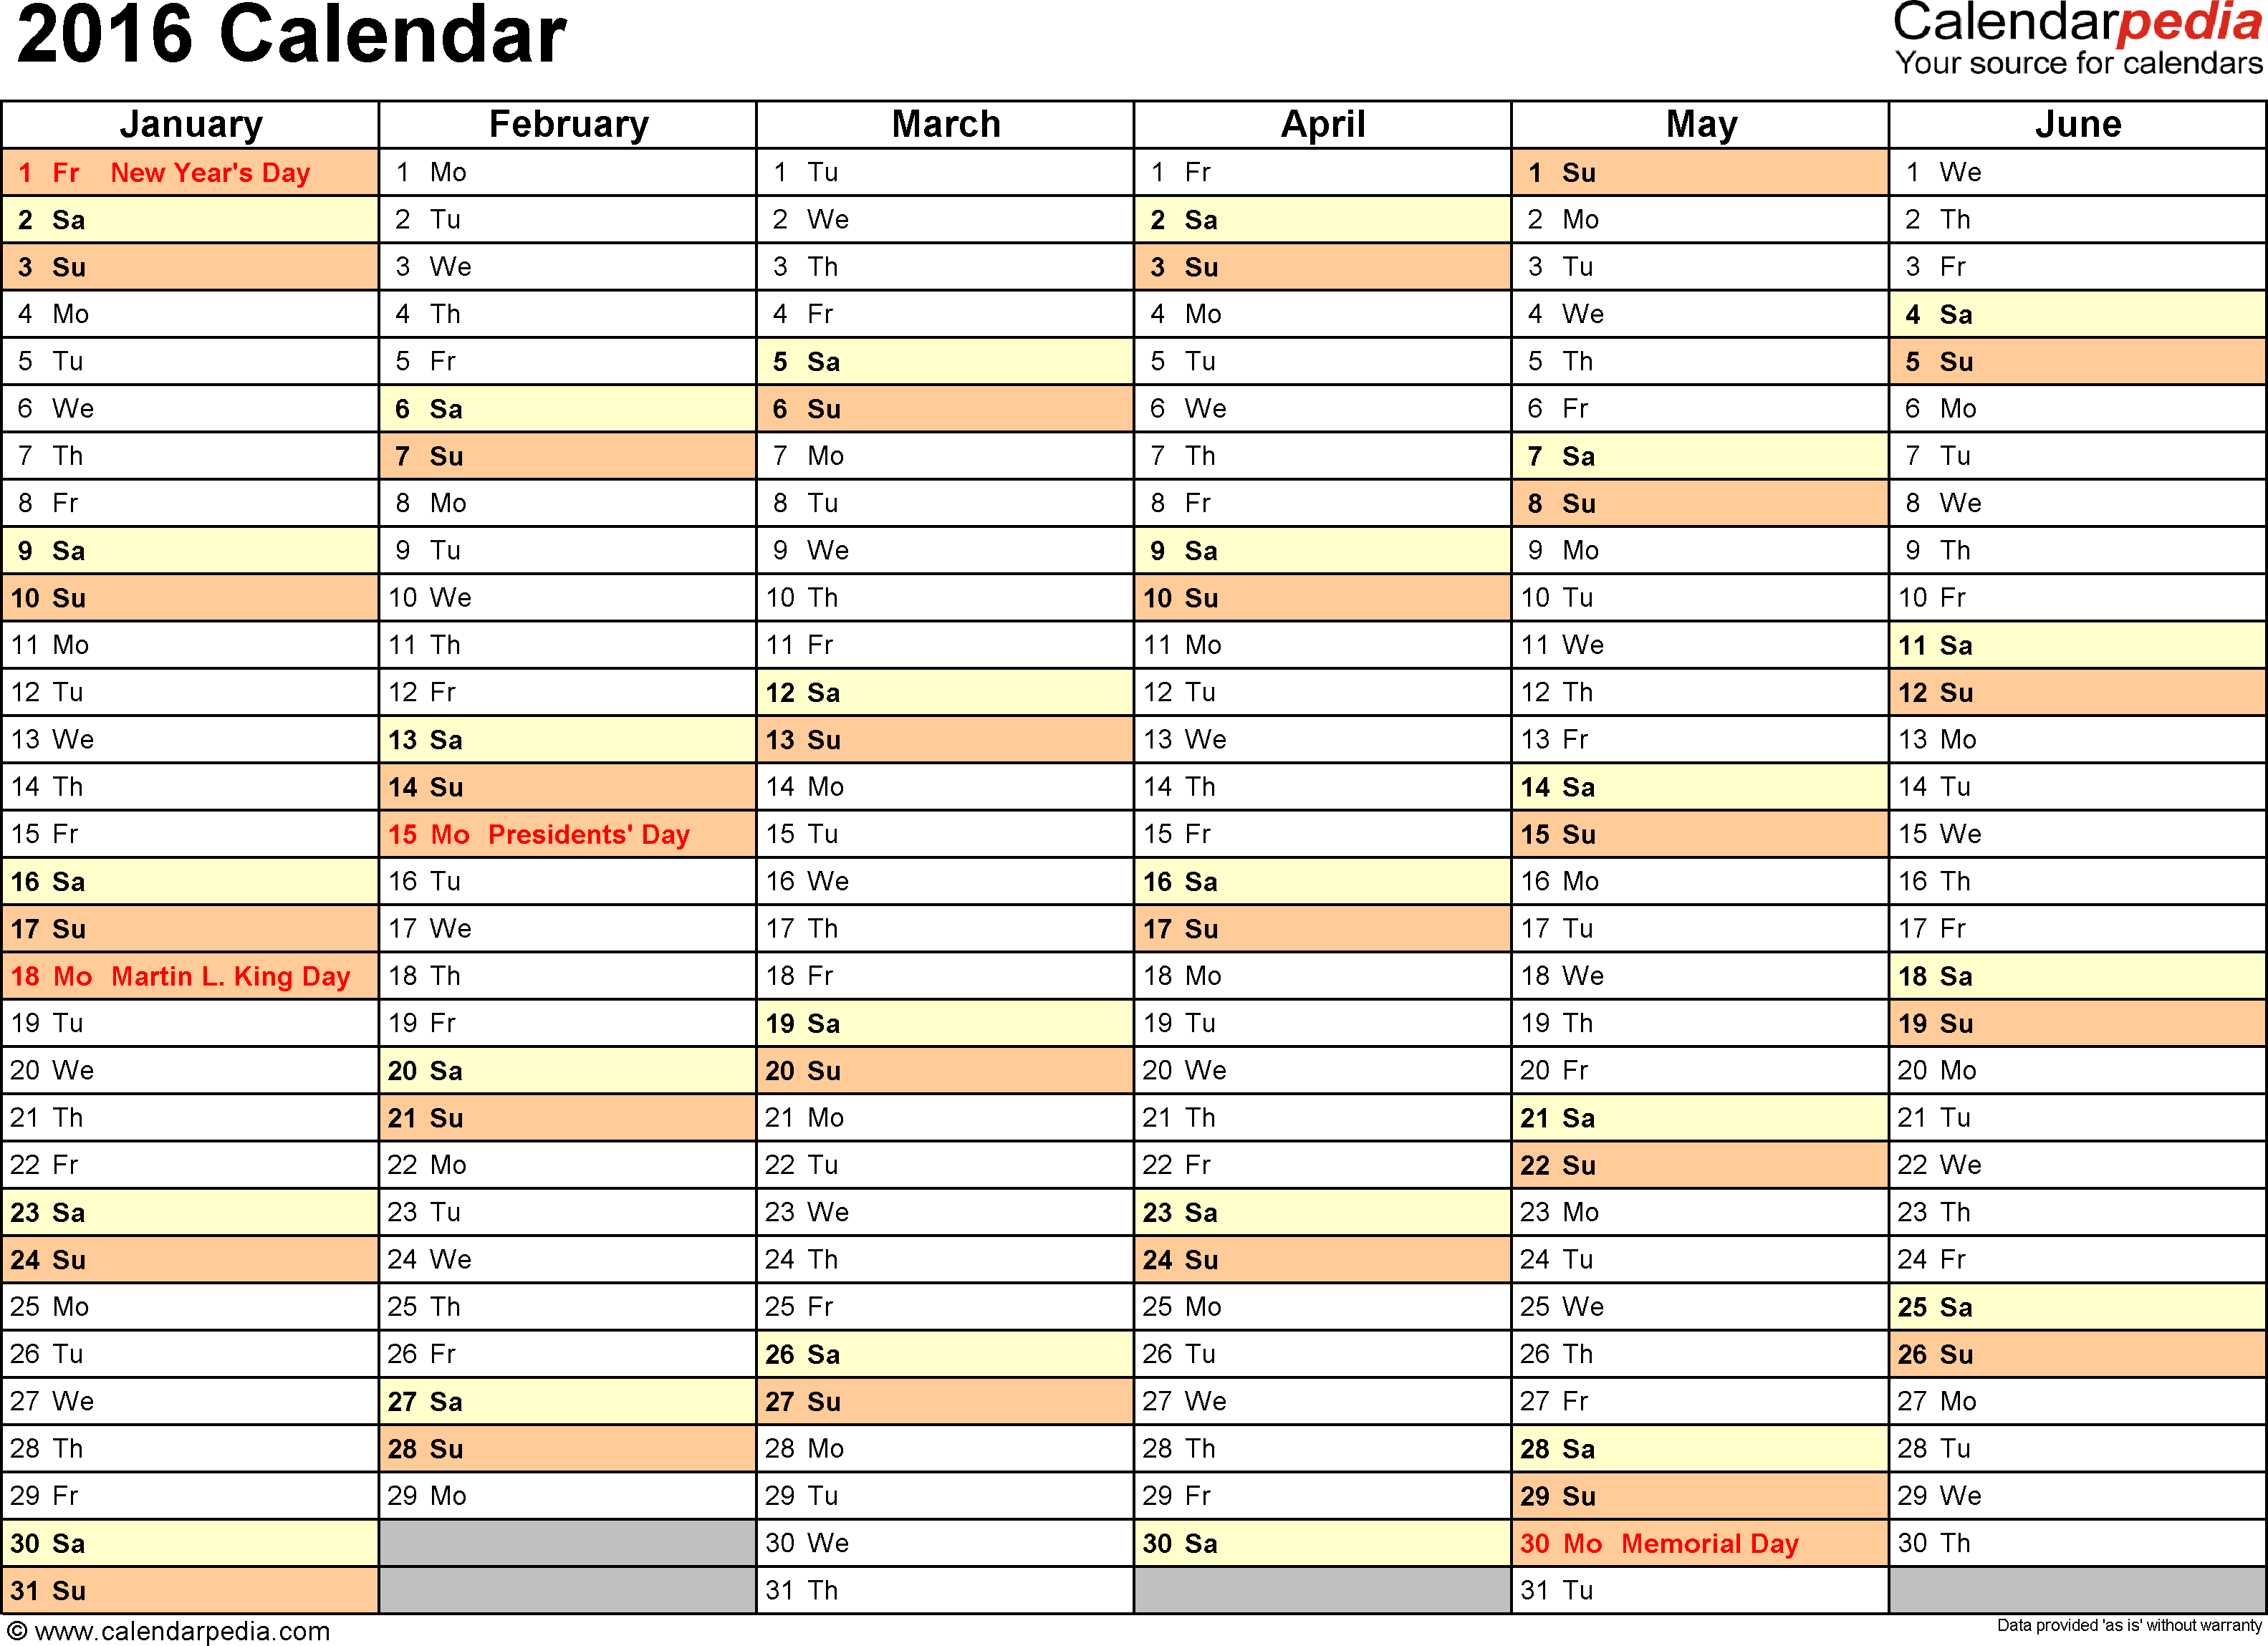 Ediblewildsus  Gorgeous  Calendar  Download  Free Printable Excel Templates Xls With Outstanding Template   Calendar For Excel Months Horizontally  Pages Landscape Orientation With Awesome Copy And Paste Formula In Excel Also Calendar On Excel In Addition Mod In Excel And How To Make Table In Excel As Well As How To Make A Spreadsheet In Excel  Additionally Excel Index And Match From Calendarpediacom With Ediblewildsus  Outstanding  Calendar  Download  Free Printable Excel Templates Xls With Awesome Template   Calendar For Excel Months Horizontally  Pages Landscape Orientation And Gorgeous Copy And Paste Formula In Excel Also Calendar On Excel In Addition Mod In Excel From Calendarpediacom